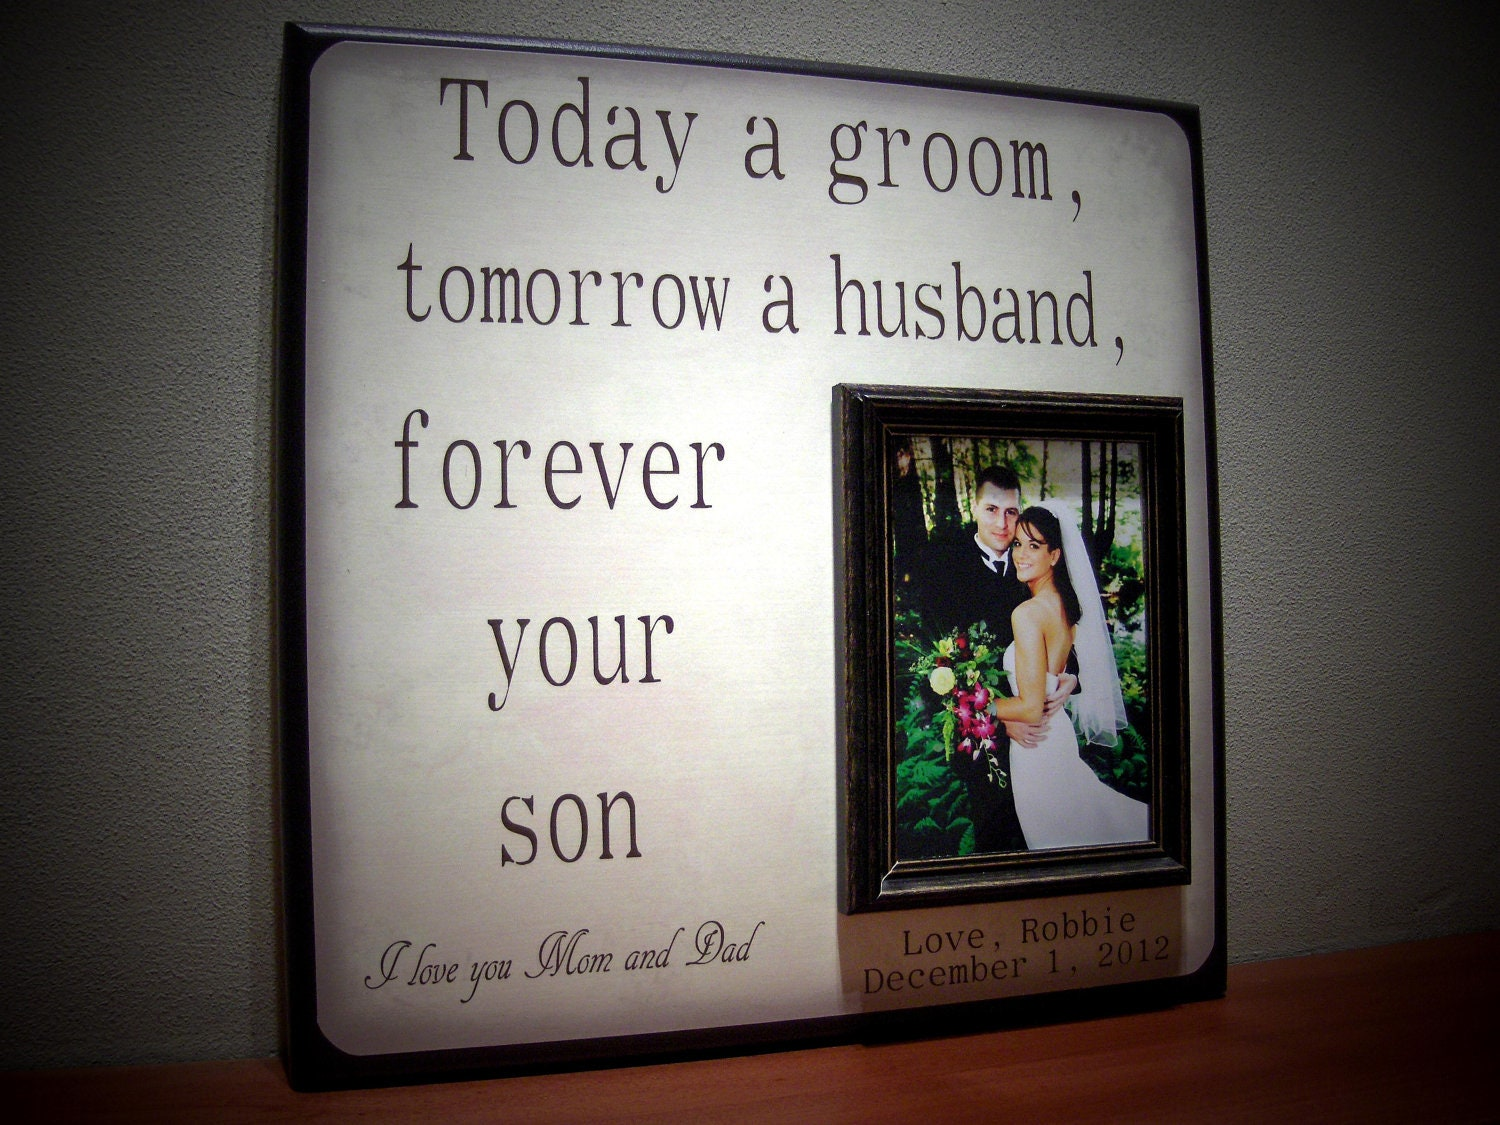 Customary Wedding Gift From Grooms Parents : Mother of the Groom Gift Father of the Groom by YourPictureStory